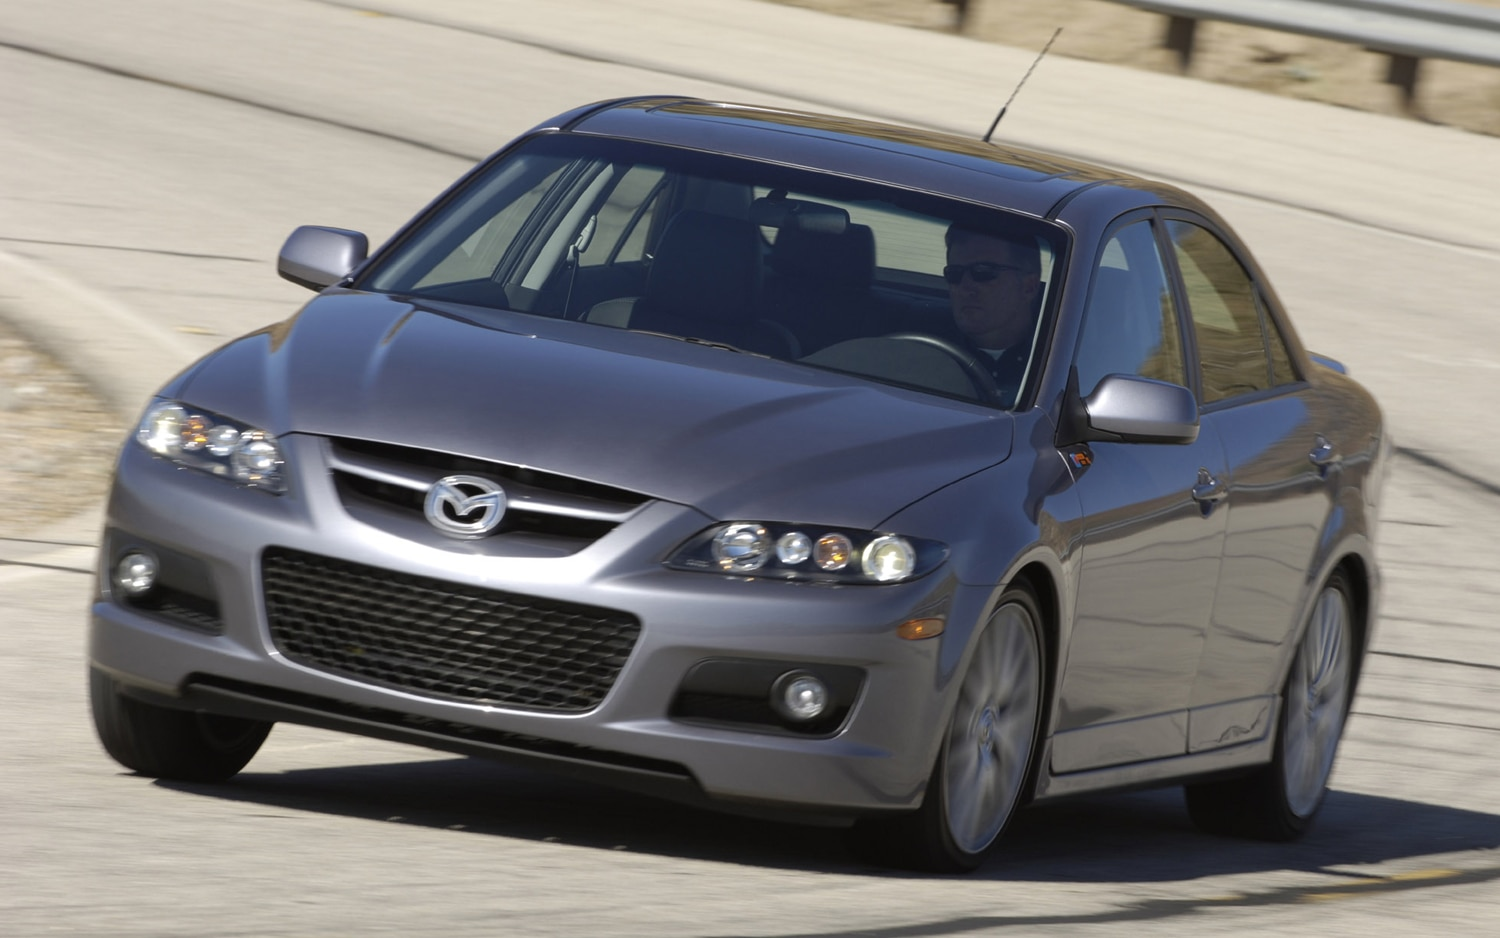 2006 Mazda Mazdaspeed6 Front Three Quarter Motion1